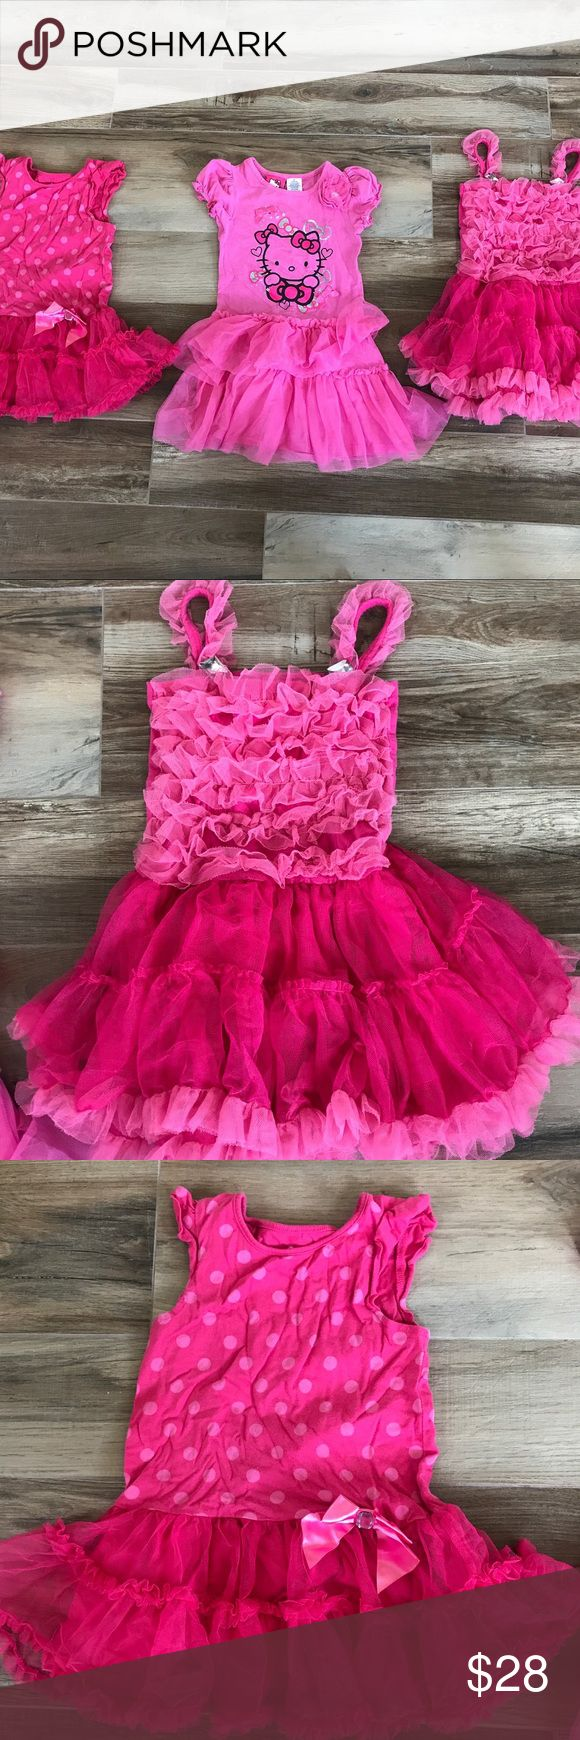 🎀BUNDLE🎀 3 pink dresses - Size 3T 🎀BUNDLE🎀 3 adorable pink twirly, girly dresses! Can be worn for holiday, special occasion, birthday princess dress, weekend dress-up, or even casual wear. All dresses are in size 3T & in PERFECT condition! Brands are Amy Coe, Circo, & Hello Kitty! 🖤 Hello Kitty Dresses